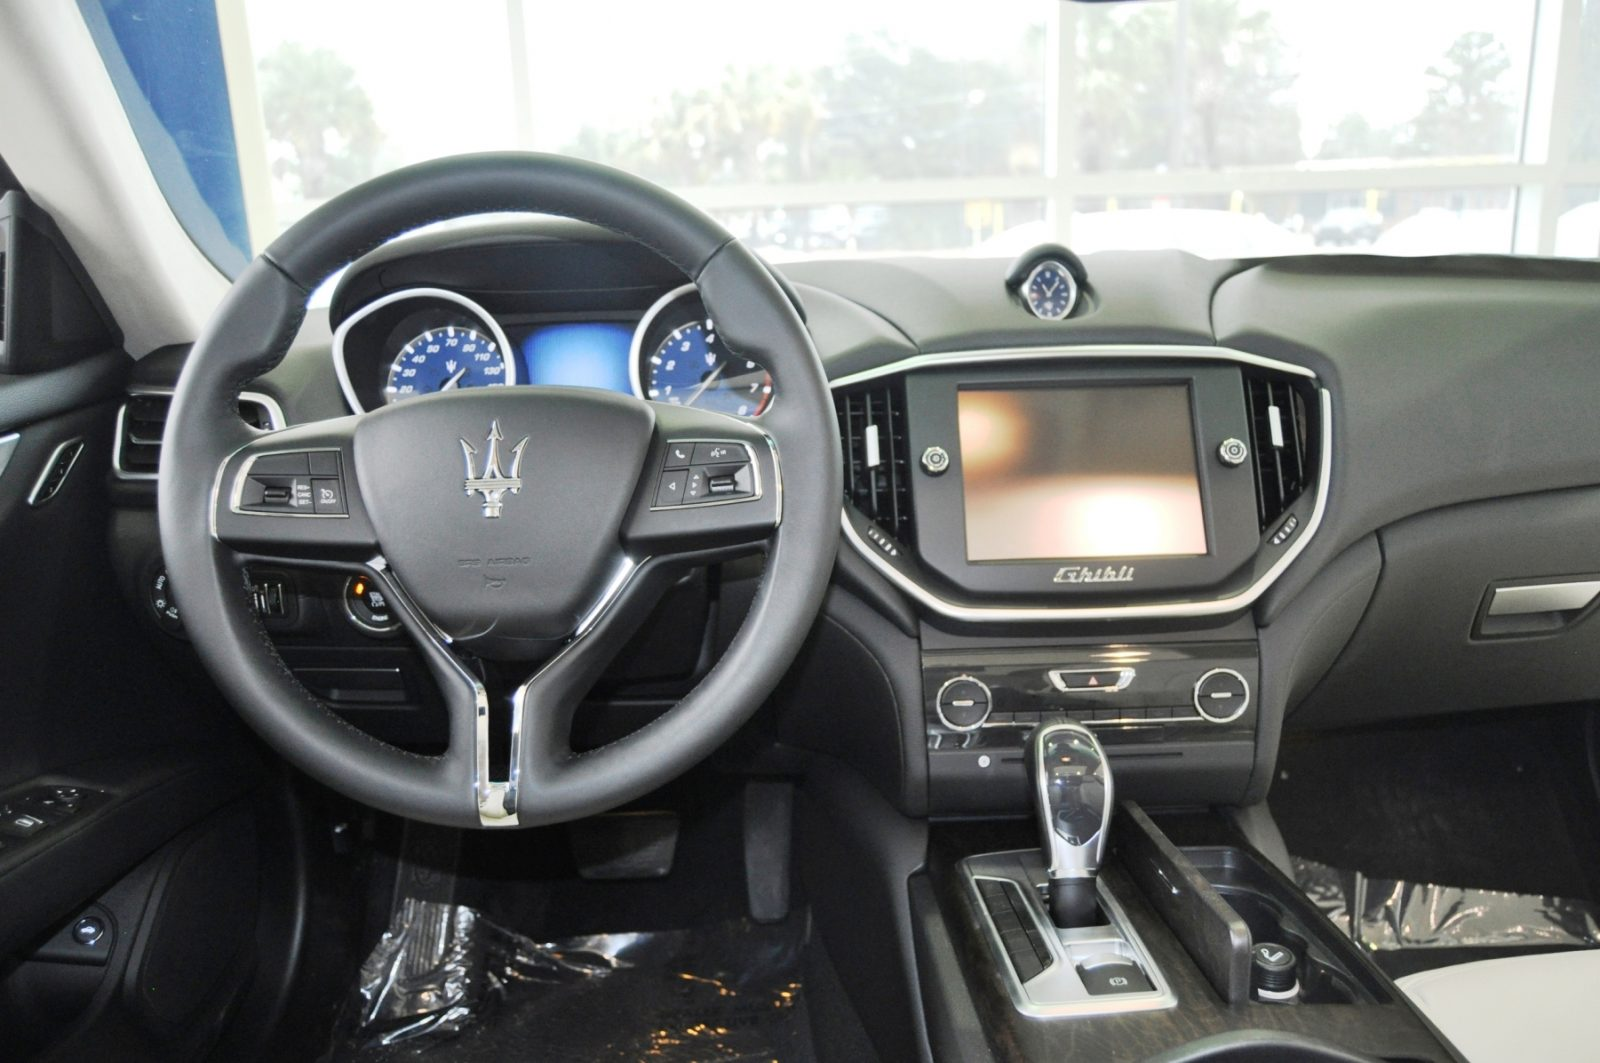 2014 Maserati Ghibli Q4 -- Interior Feels Luxe and High-Quality, But Back Seat A Bit Tight 9